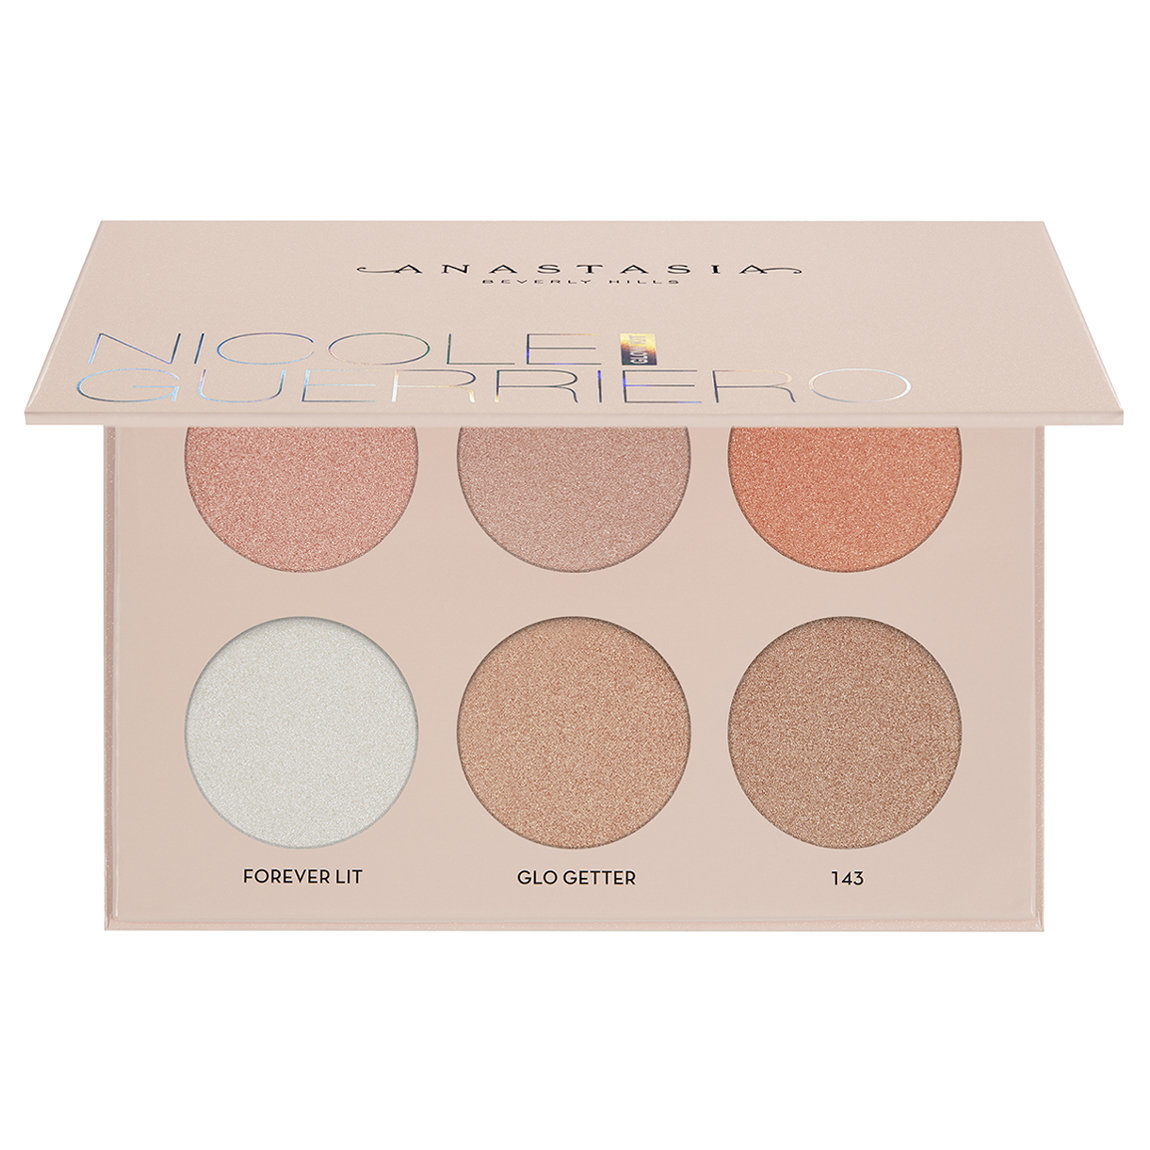 Anastasia Beverly Hills Nicole Guerriero Glow Kit alternative view 1 - product swatch.